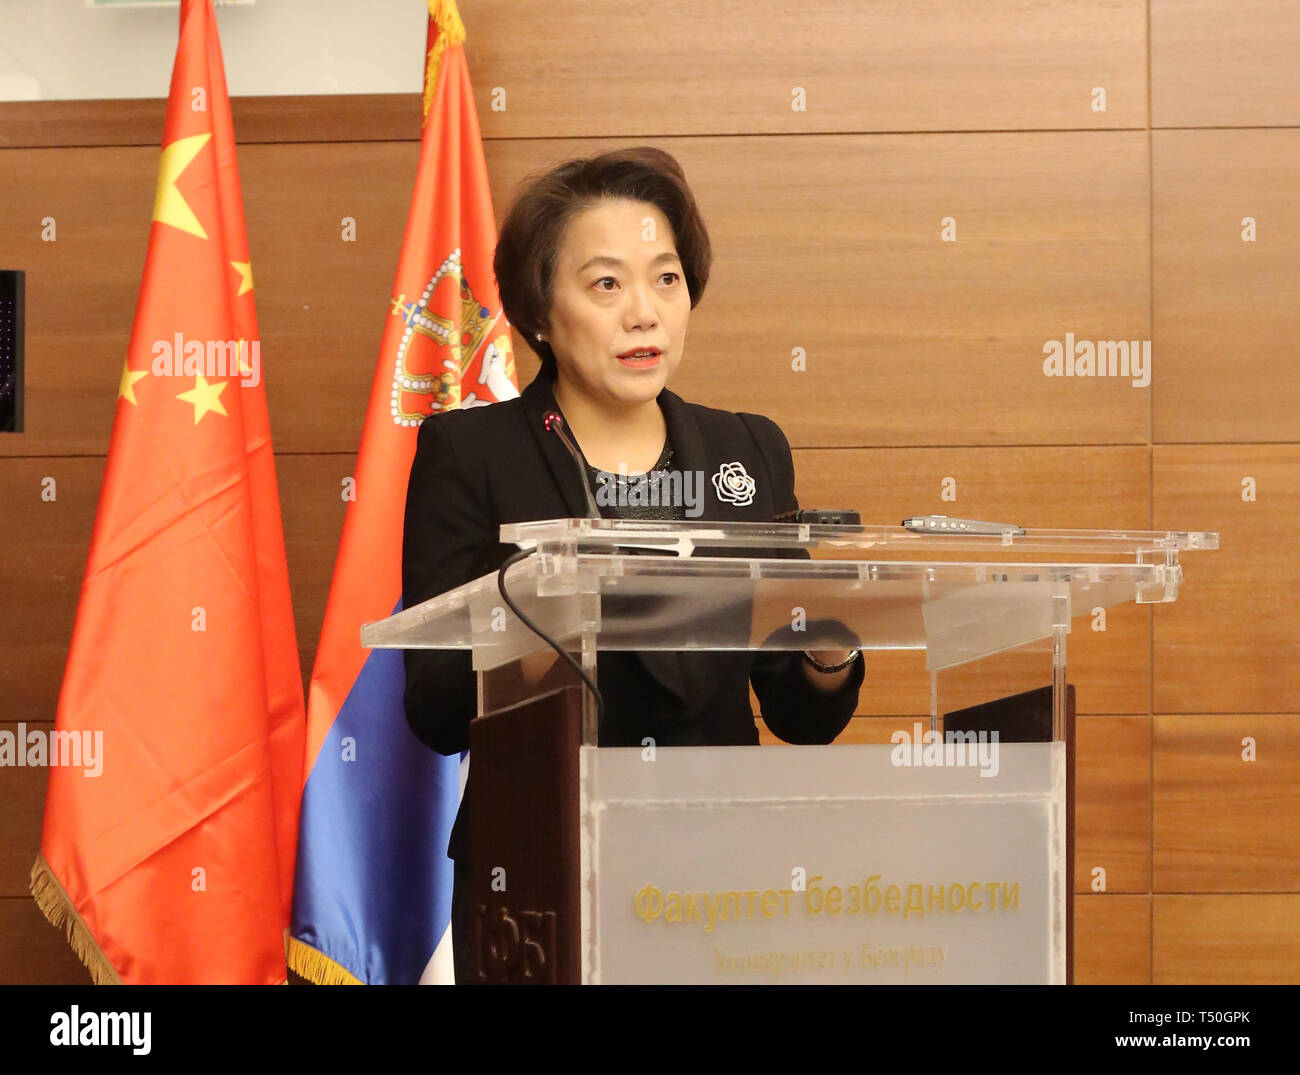 (190420) -- BELGRADE, April 20, 2019 (Xinhua) -- Chinese Ambassador to Serbia Chen Bo addresses the opening ceremony of the 3rd international scientific conference 'One Belt, One Road -- Serbia and the Initiative 16 1' in Belgrade, Serbia, April 19, 2019. Concerns of the European Union (EU) over the strengthening of the China and Central and Eastern European Countries (CEECs) cooperation were unjustified, Ivica Dacic, first deputy prime minister and foreign minister of Serbia, said on Friday. The 3rd international scientific conference 'One Belt, One Road -- Serbia and the Initiative 16 1' gat - Stock Image